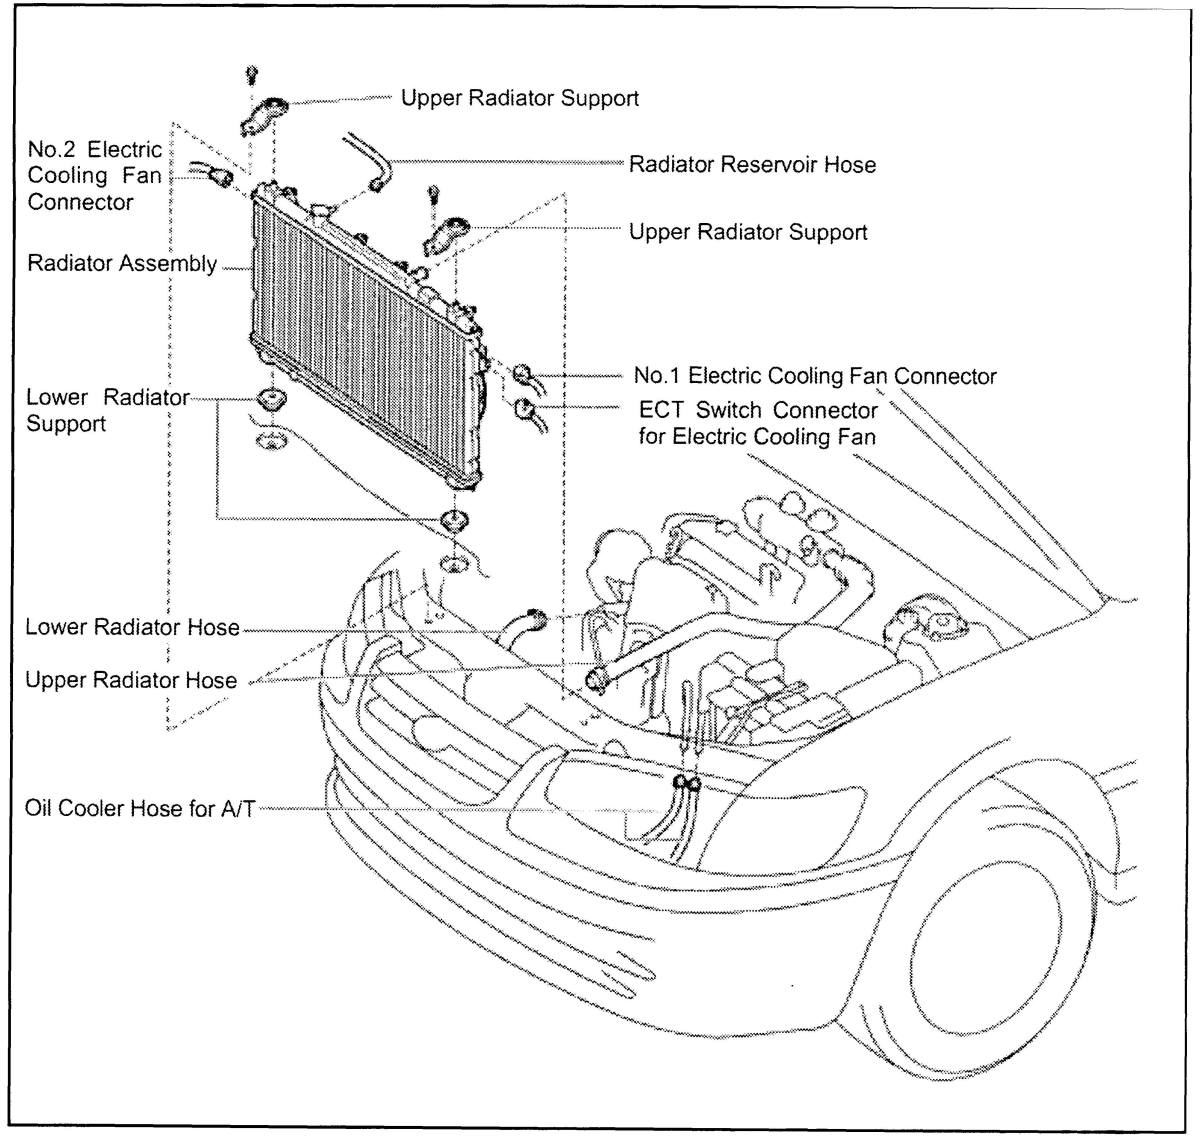 Diy Toyota Camry Radiator Replacement With Video Axleaddict Engine Fan Diagram